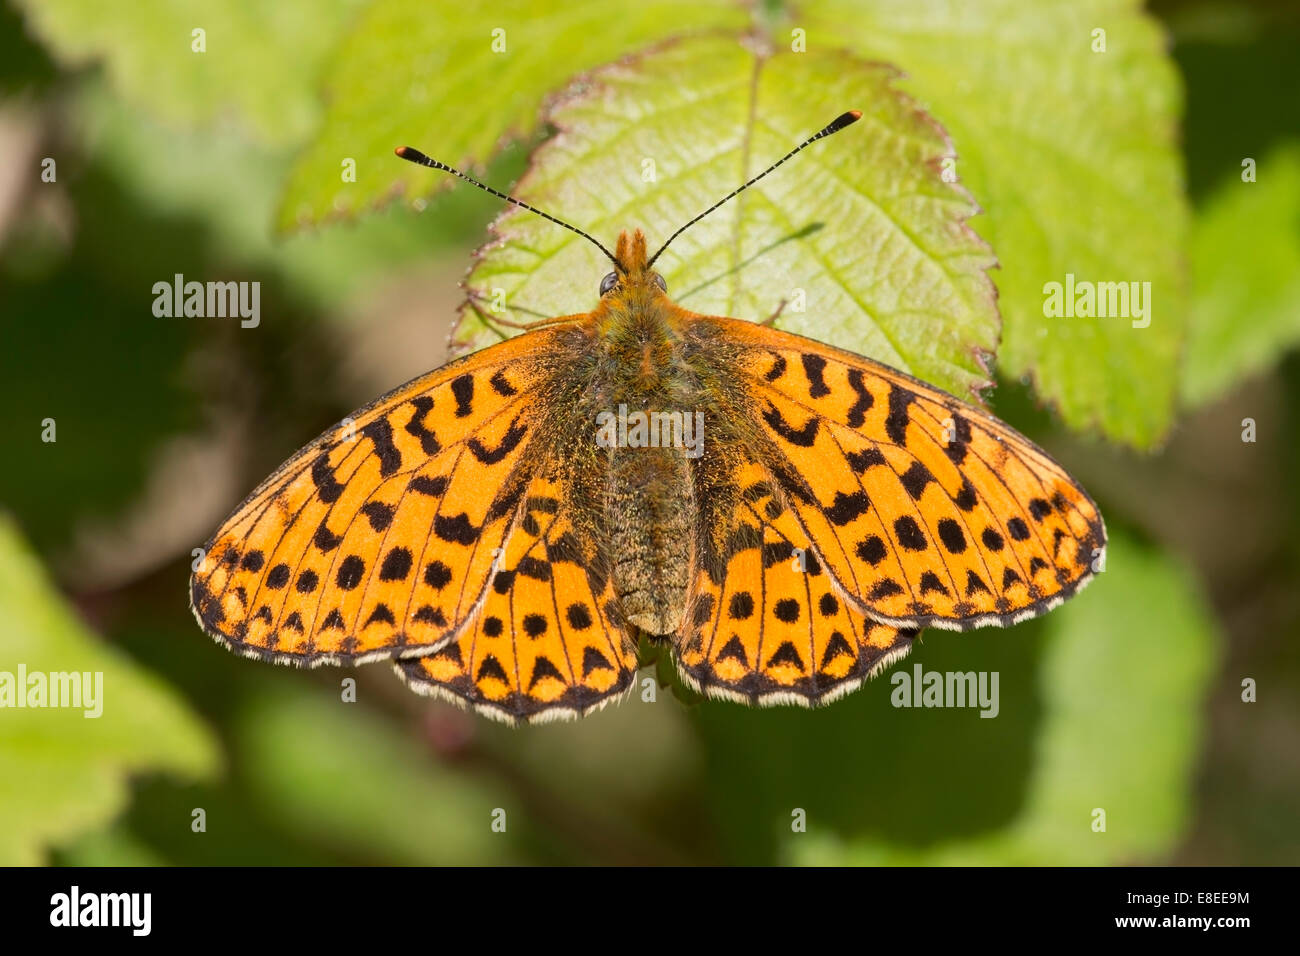 freshly emerged adult pearl-bordered fritillary butterfly resting on bramble leaf, New Forest, England - Stock Image